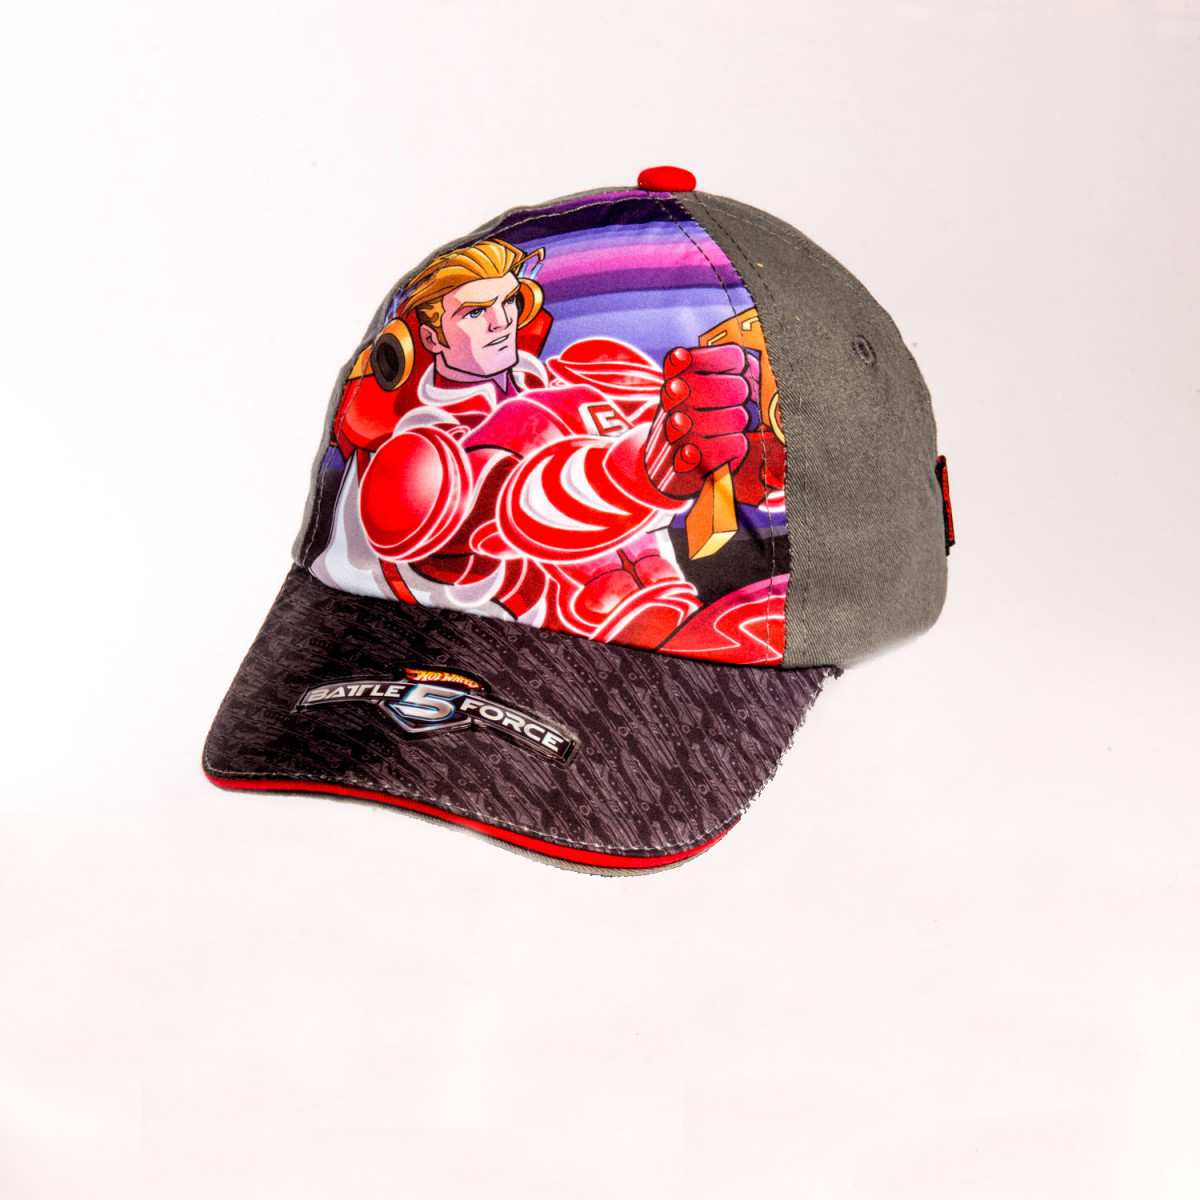 GORRA FOOTY BATLE 5 FORCE